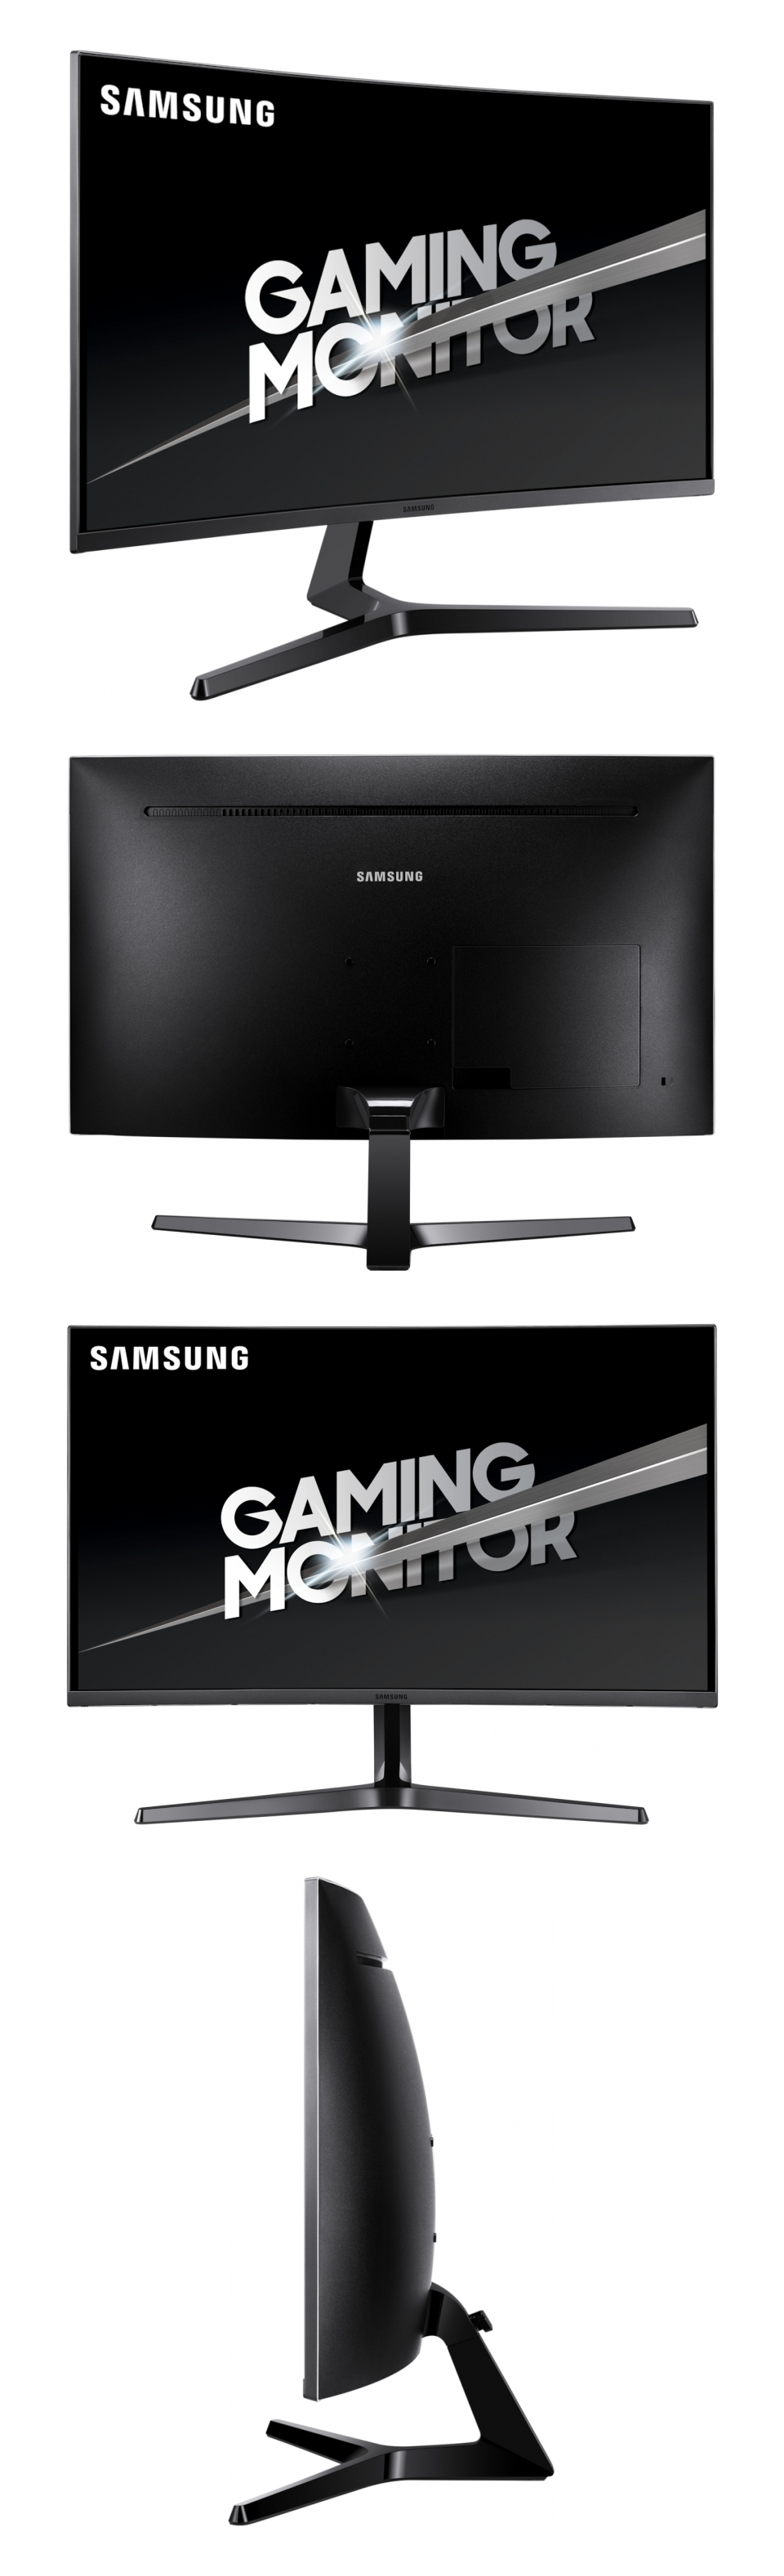 Samsung JG54 QHD 144Hz FreeSync Curved 27in Monitor product